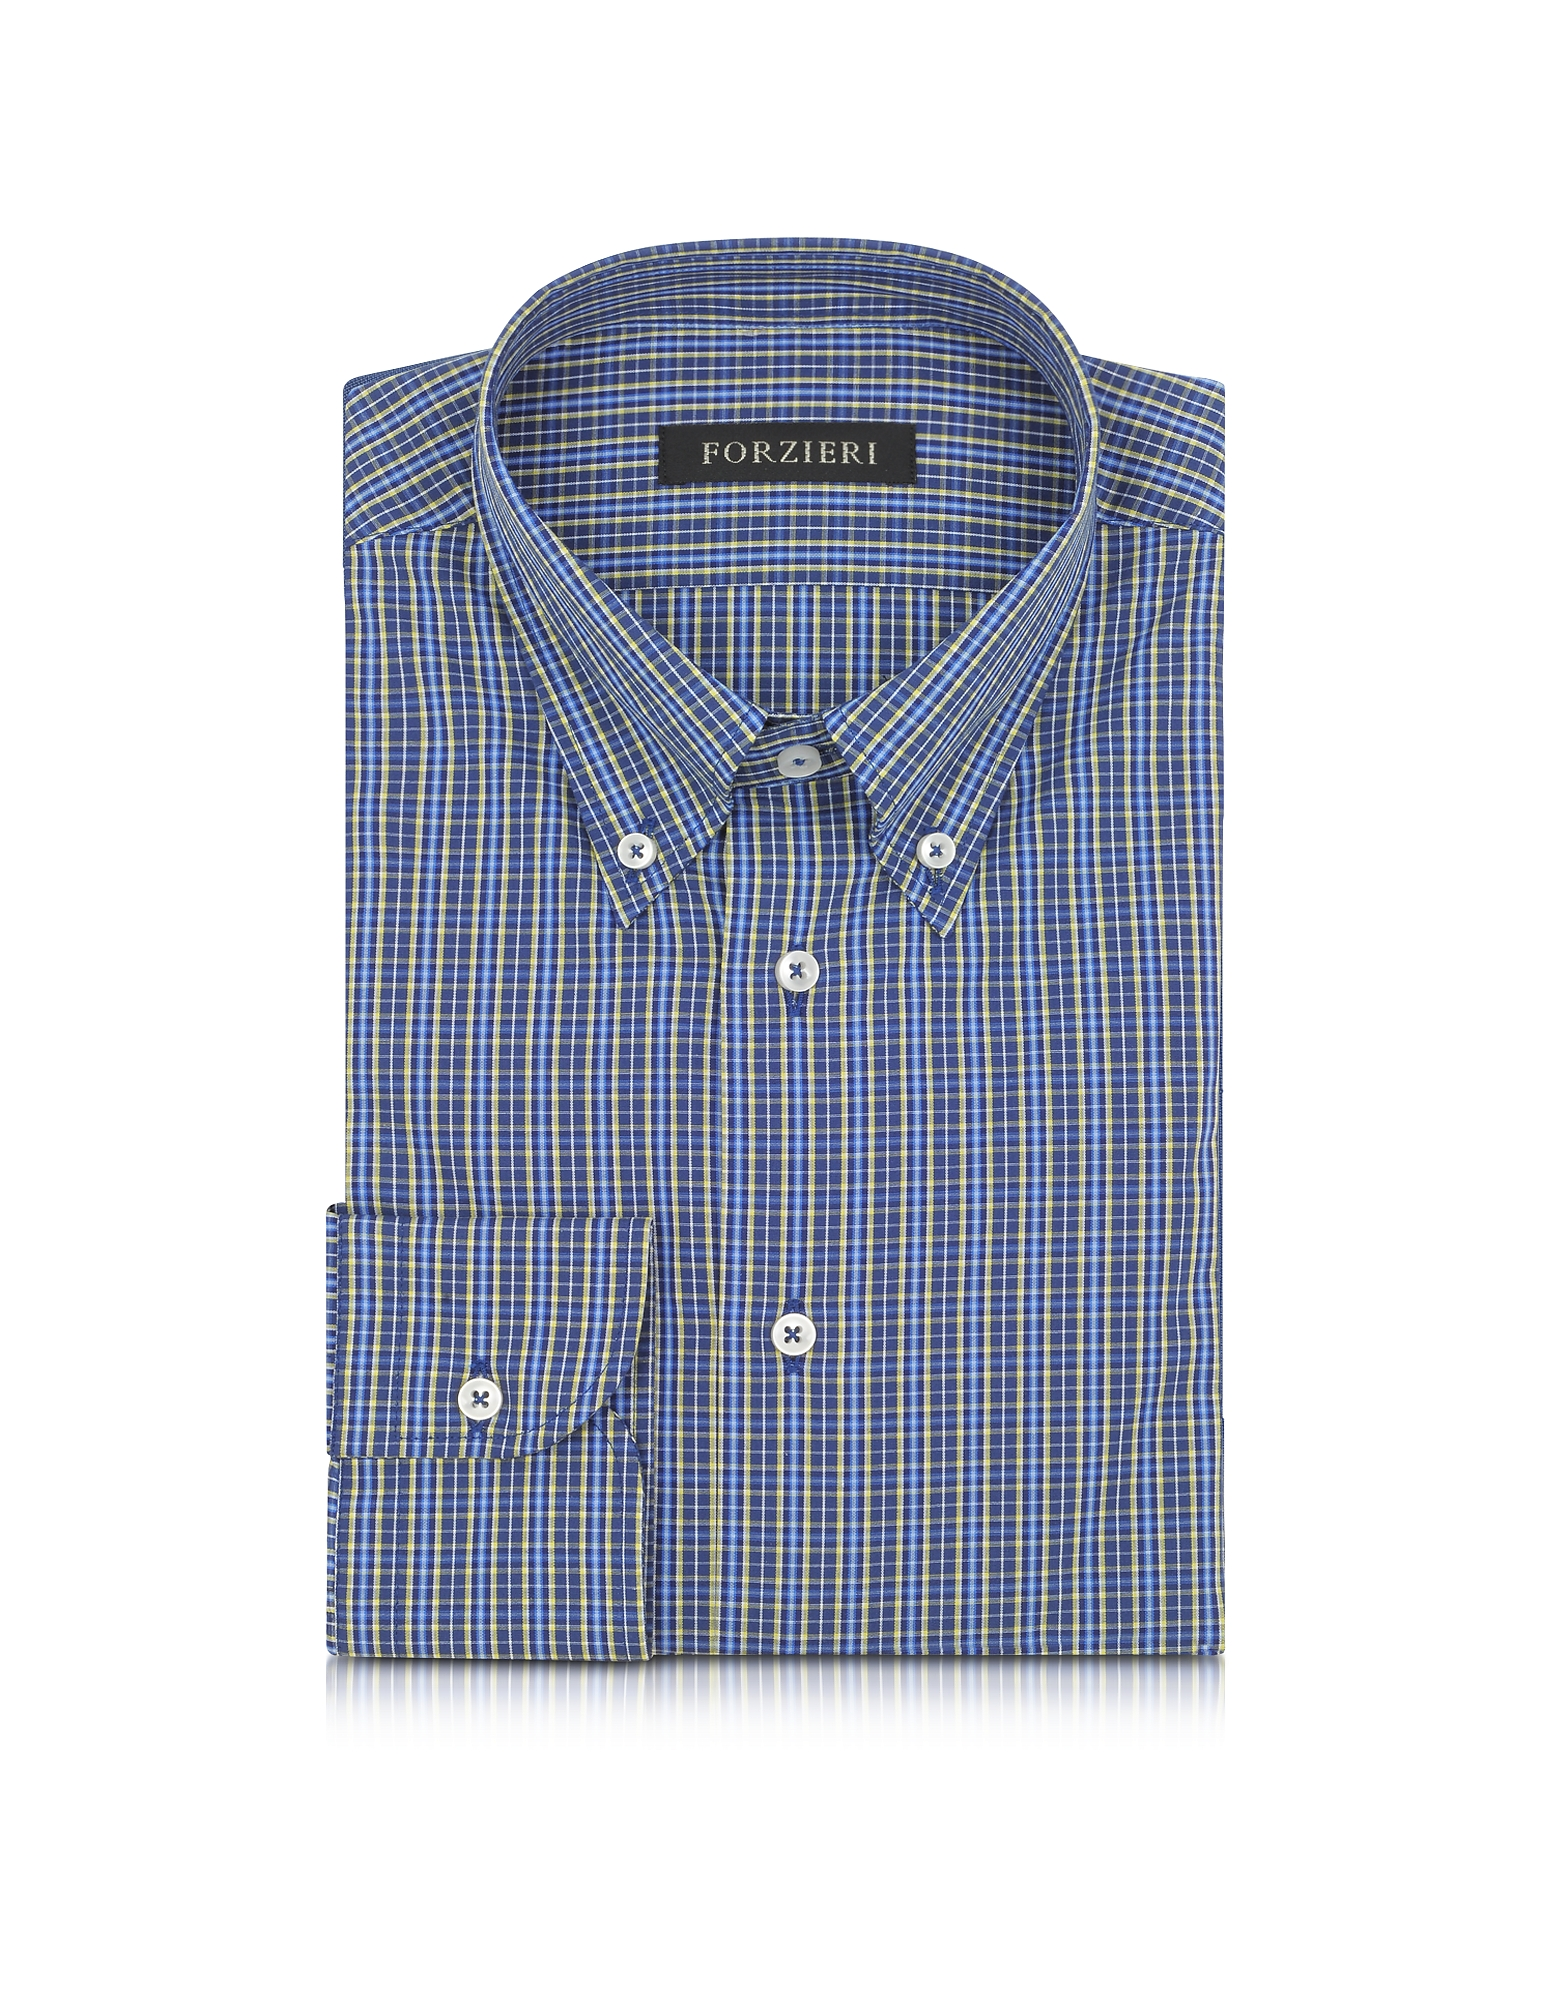 Forzieri Dress Shirts, Blue and Yellow Plaid Cotton Slim Fit Men's Shirt